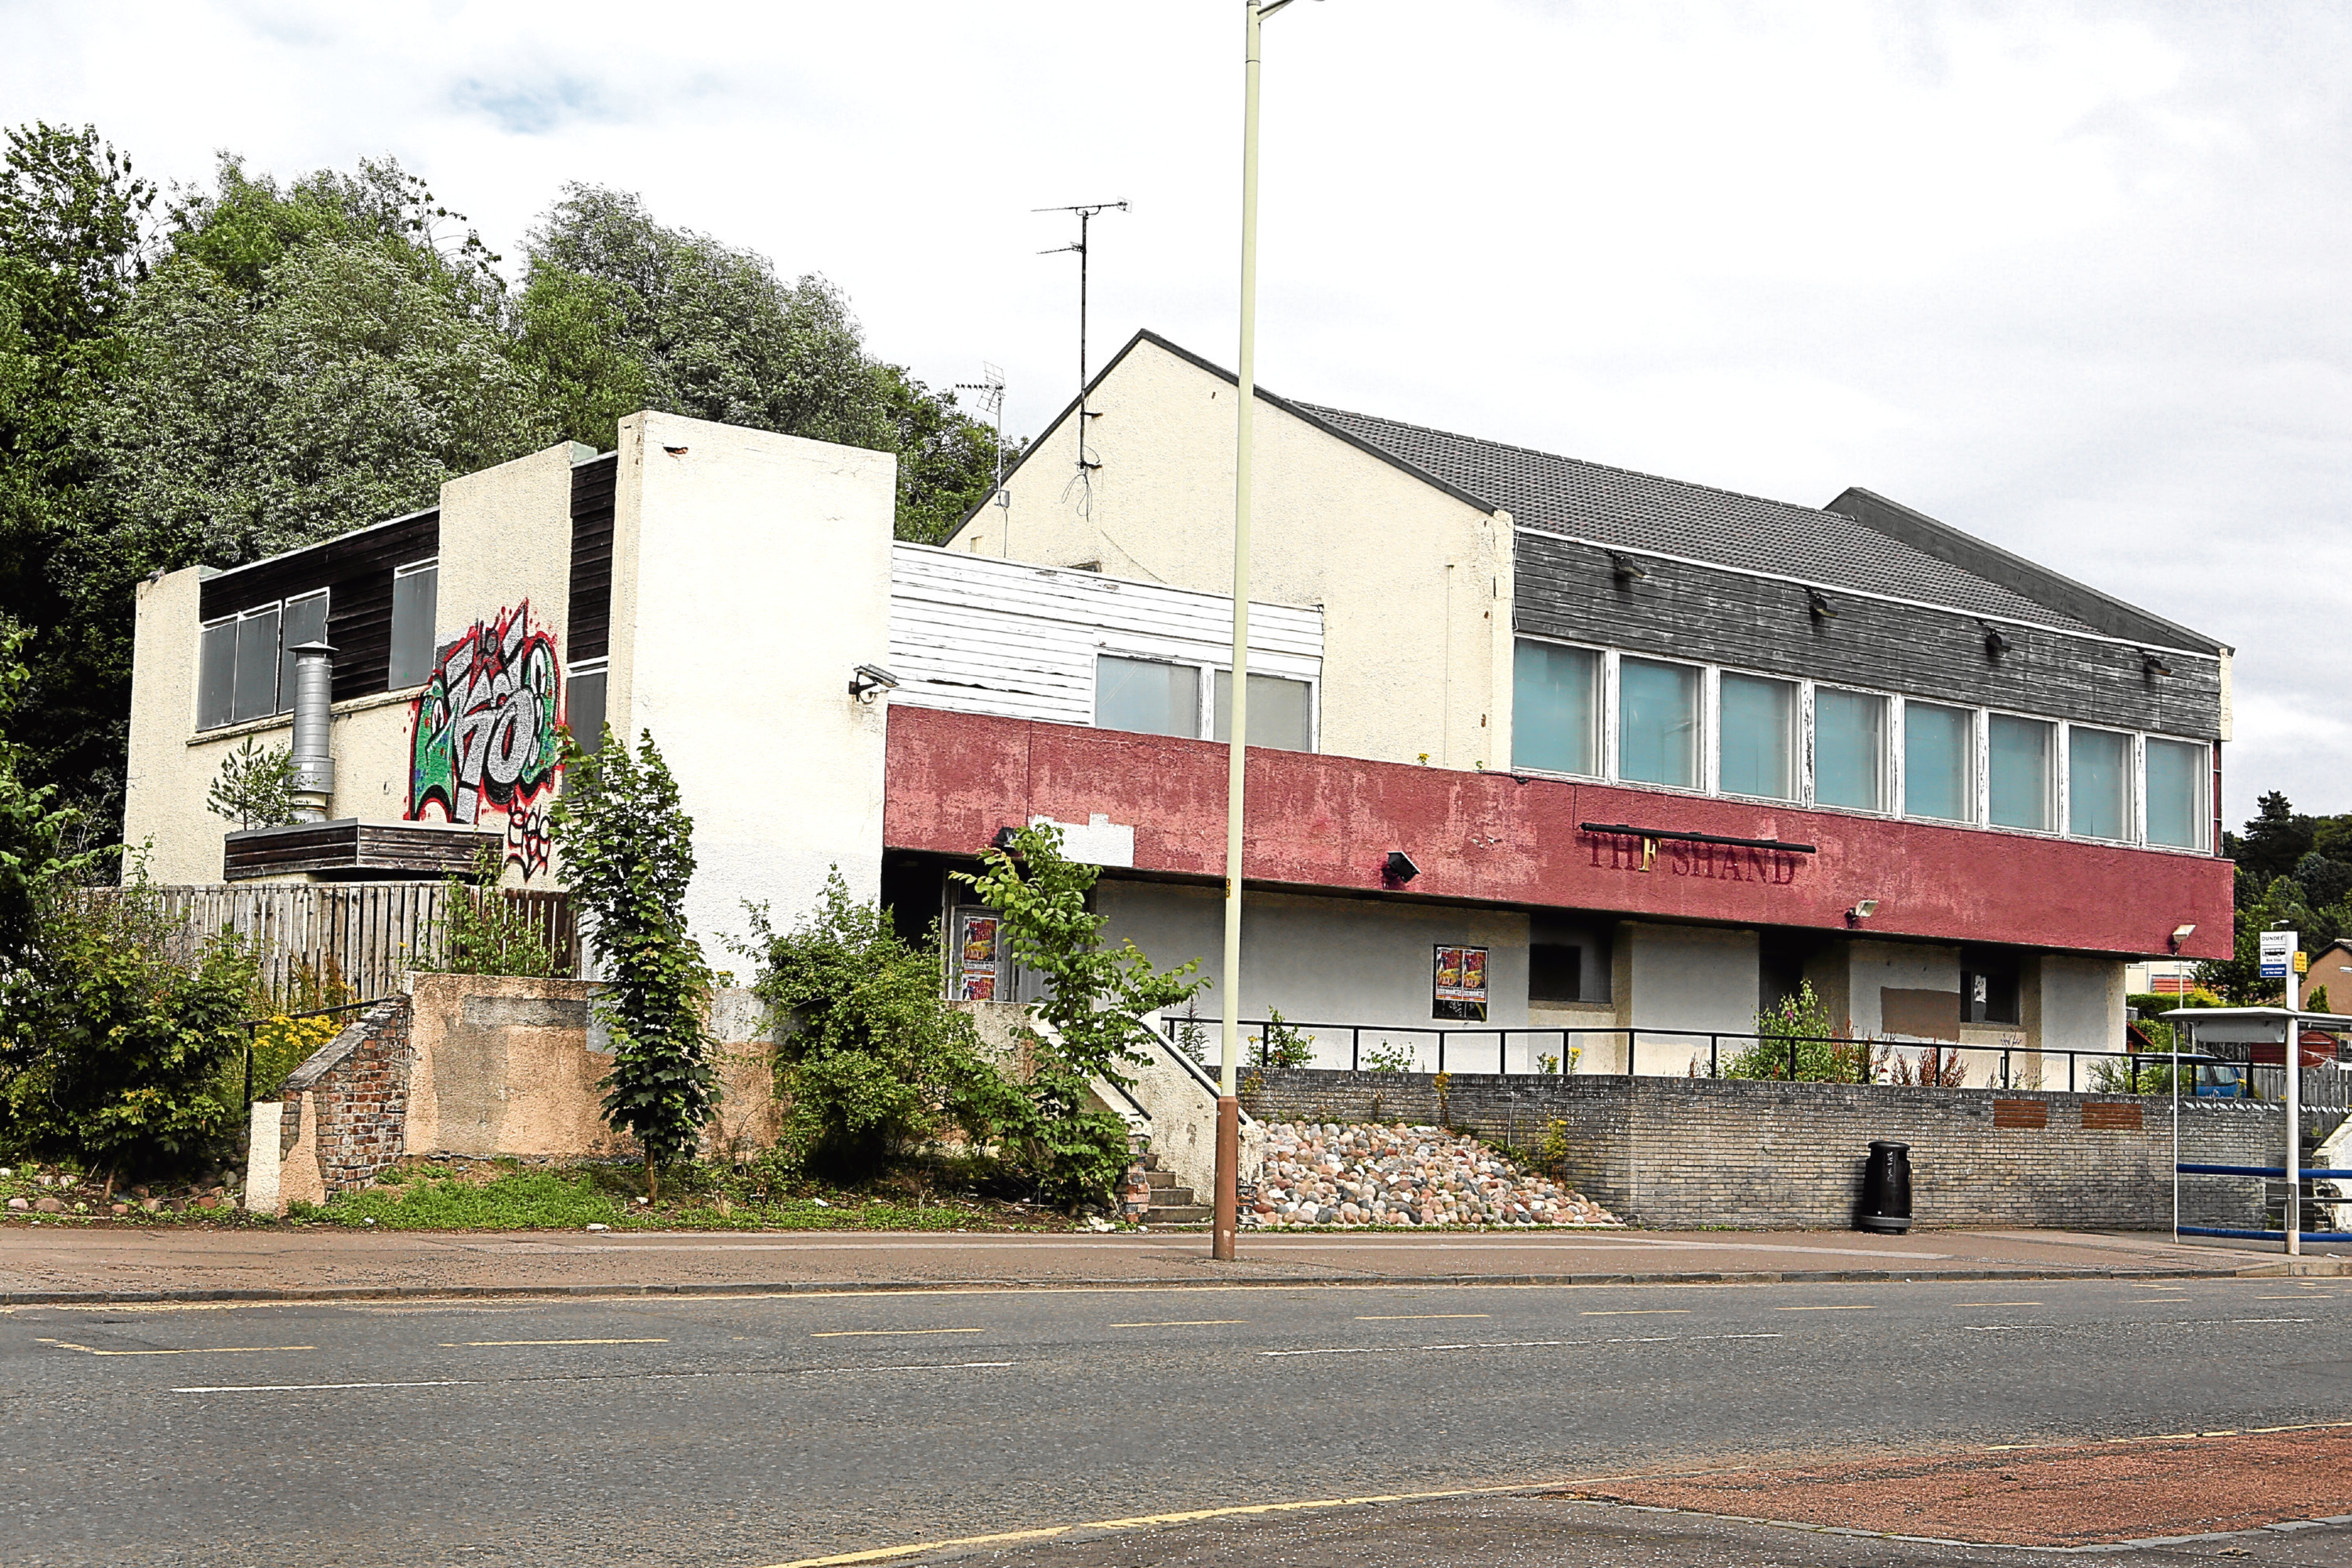 If approved the Jimmy Shand pub will be demolished.